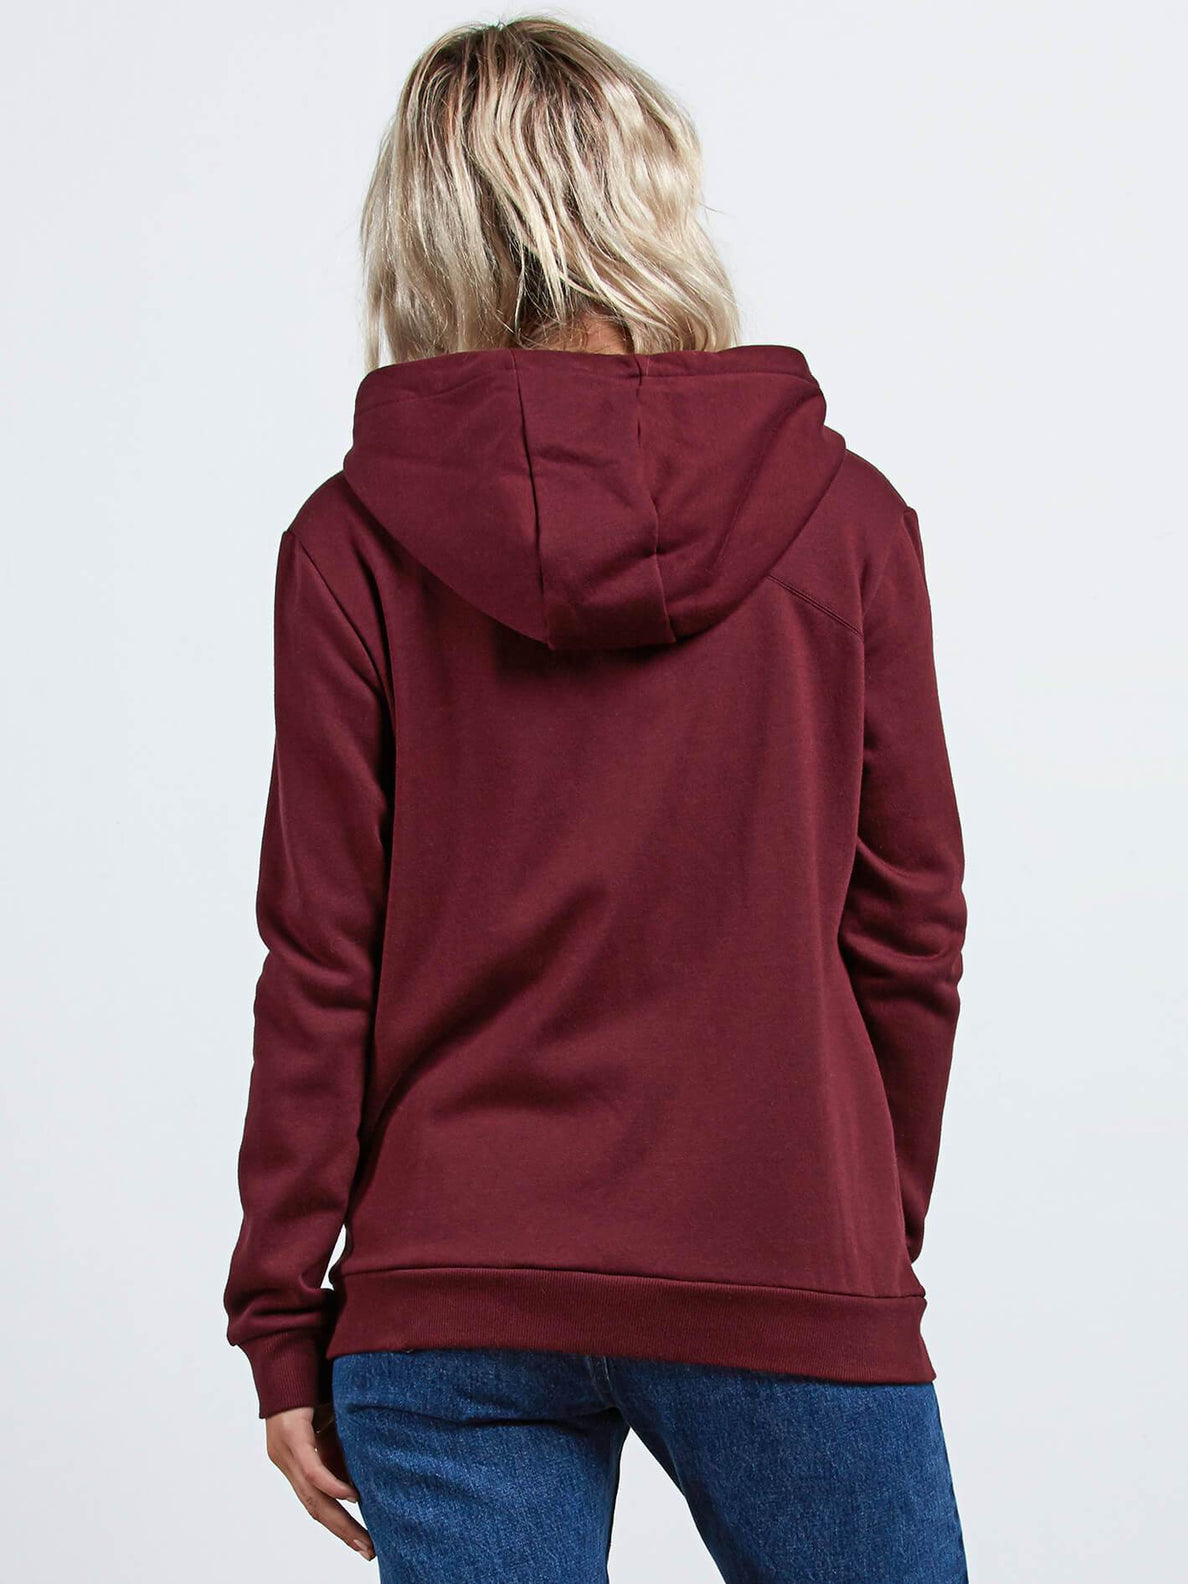 Walk On By Zip Flce Sweatshirts - Burgundy